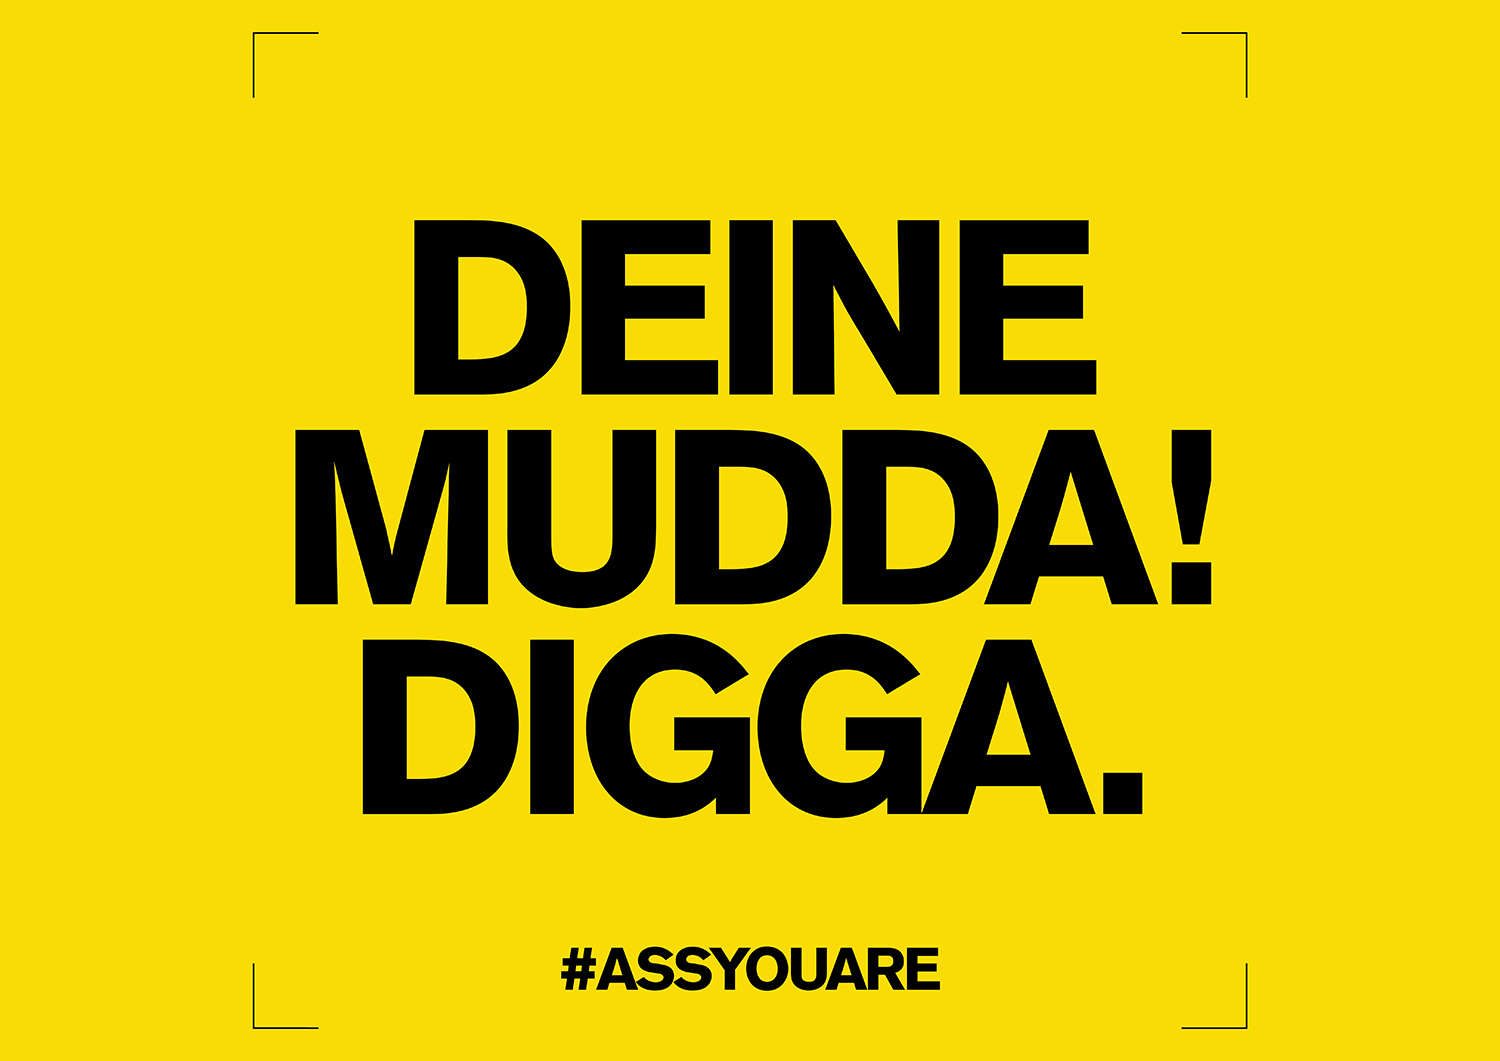 ASSYOUARE. Kampagne. 10